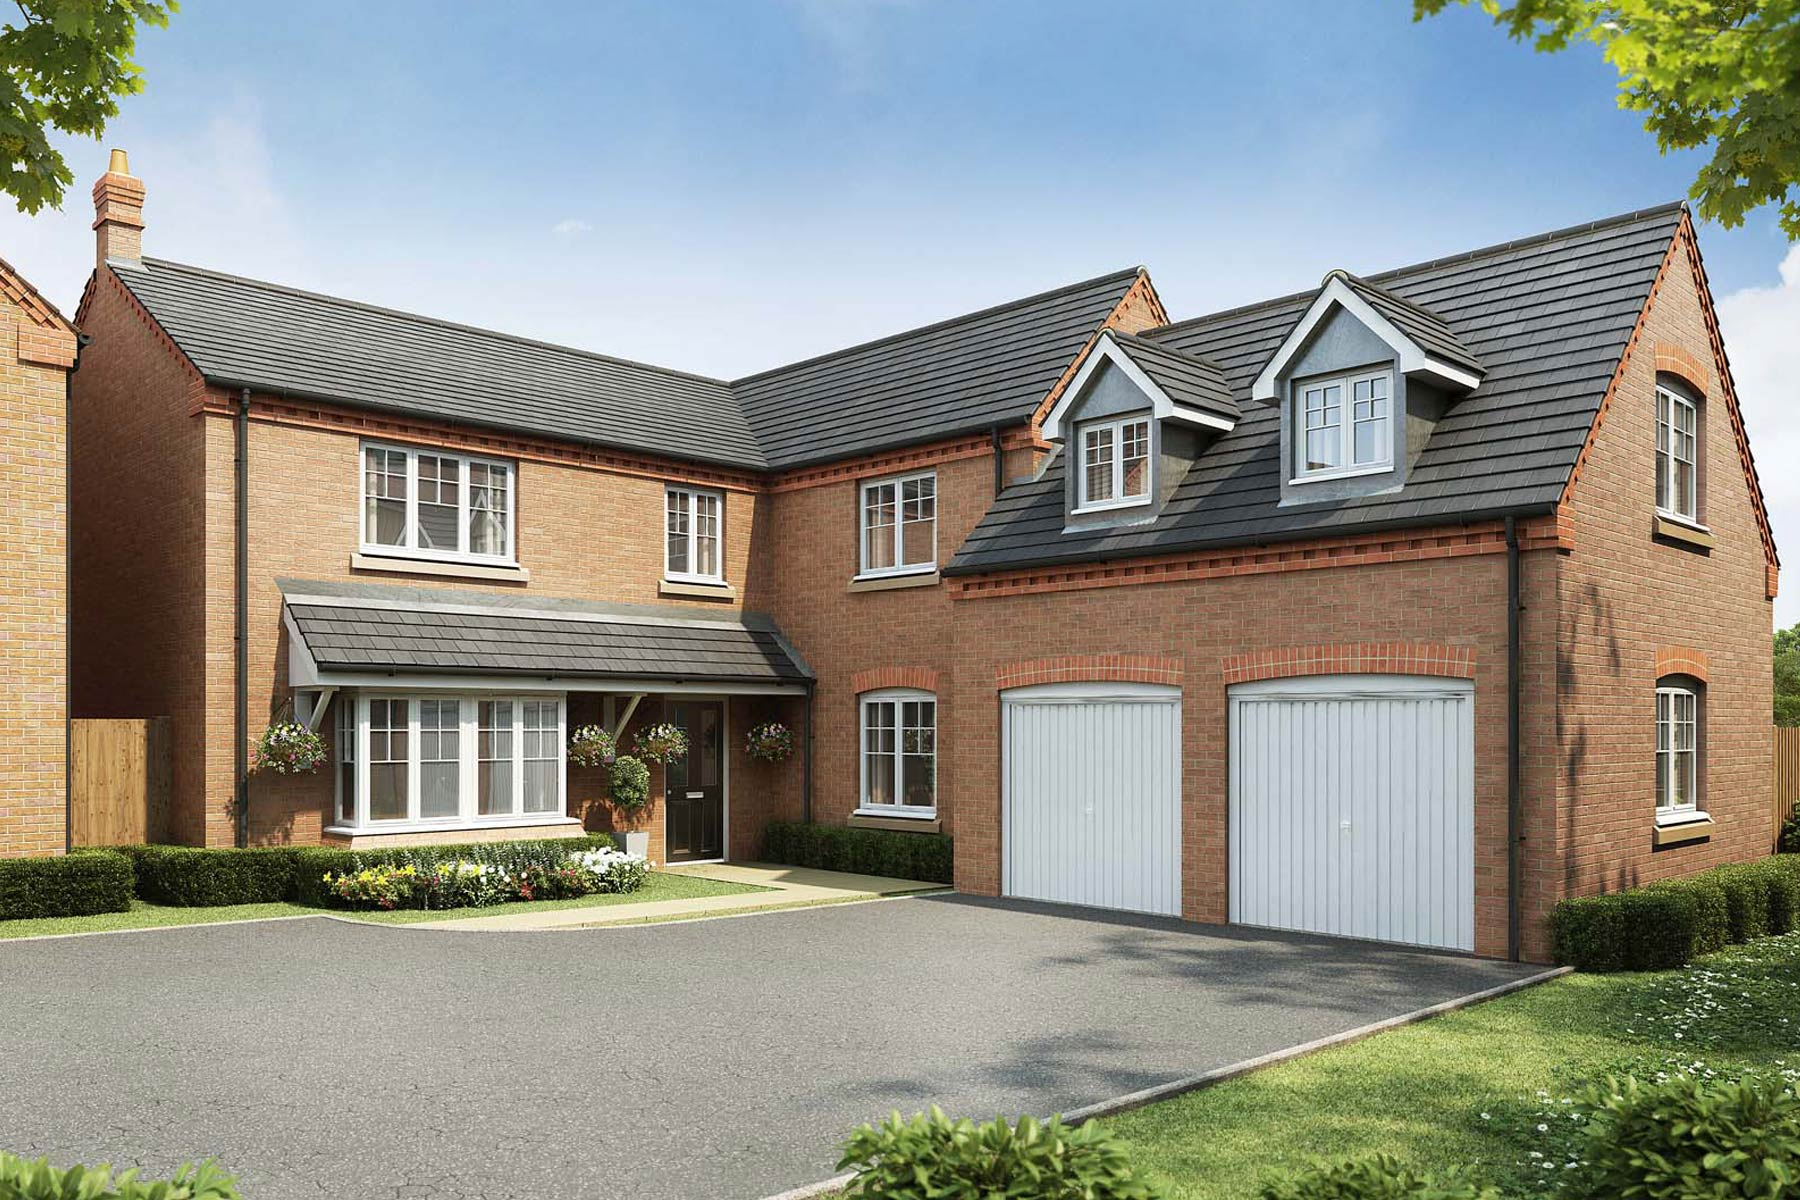 CGI-The-Longford-Type-L-Plot-77-Bowbrook-brochure_1800x1200